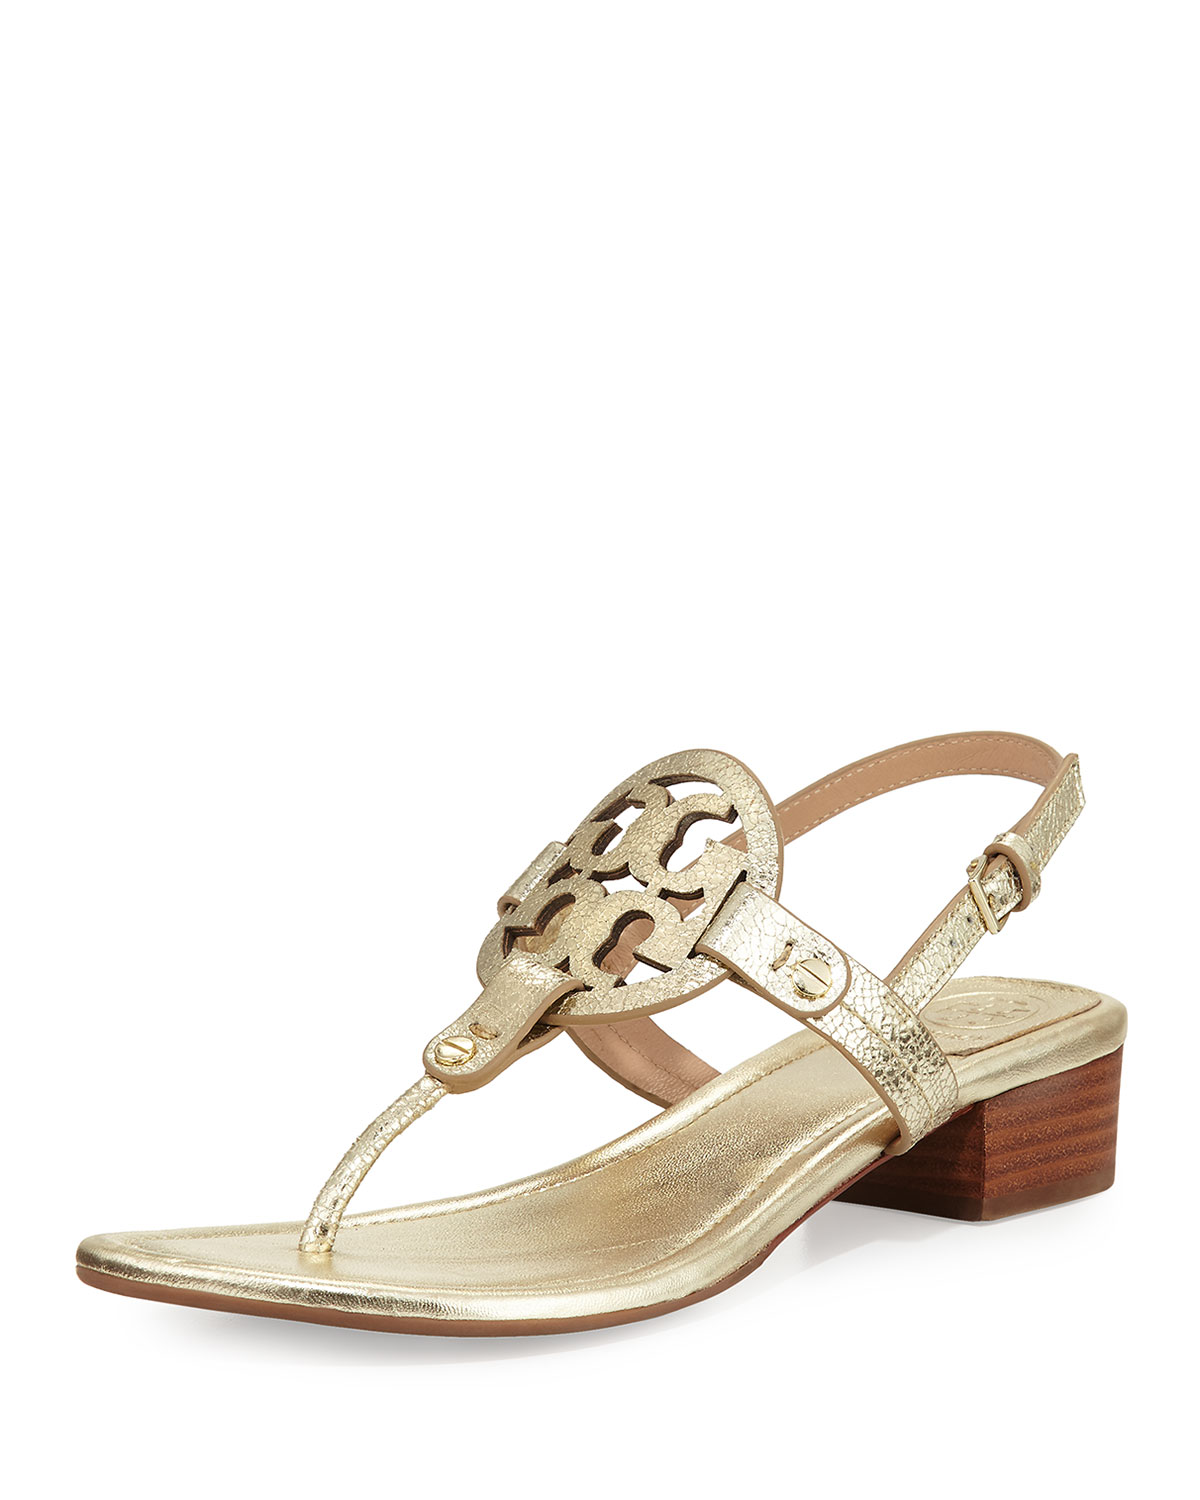 02a16273d Tory Burch Miller Metallic 30mm Thong Sandal